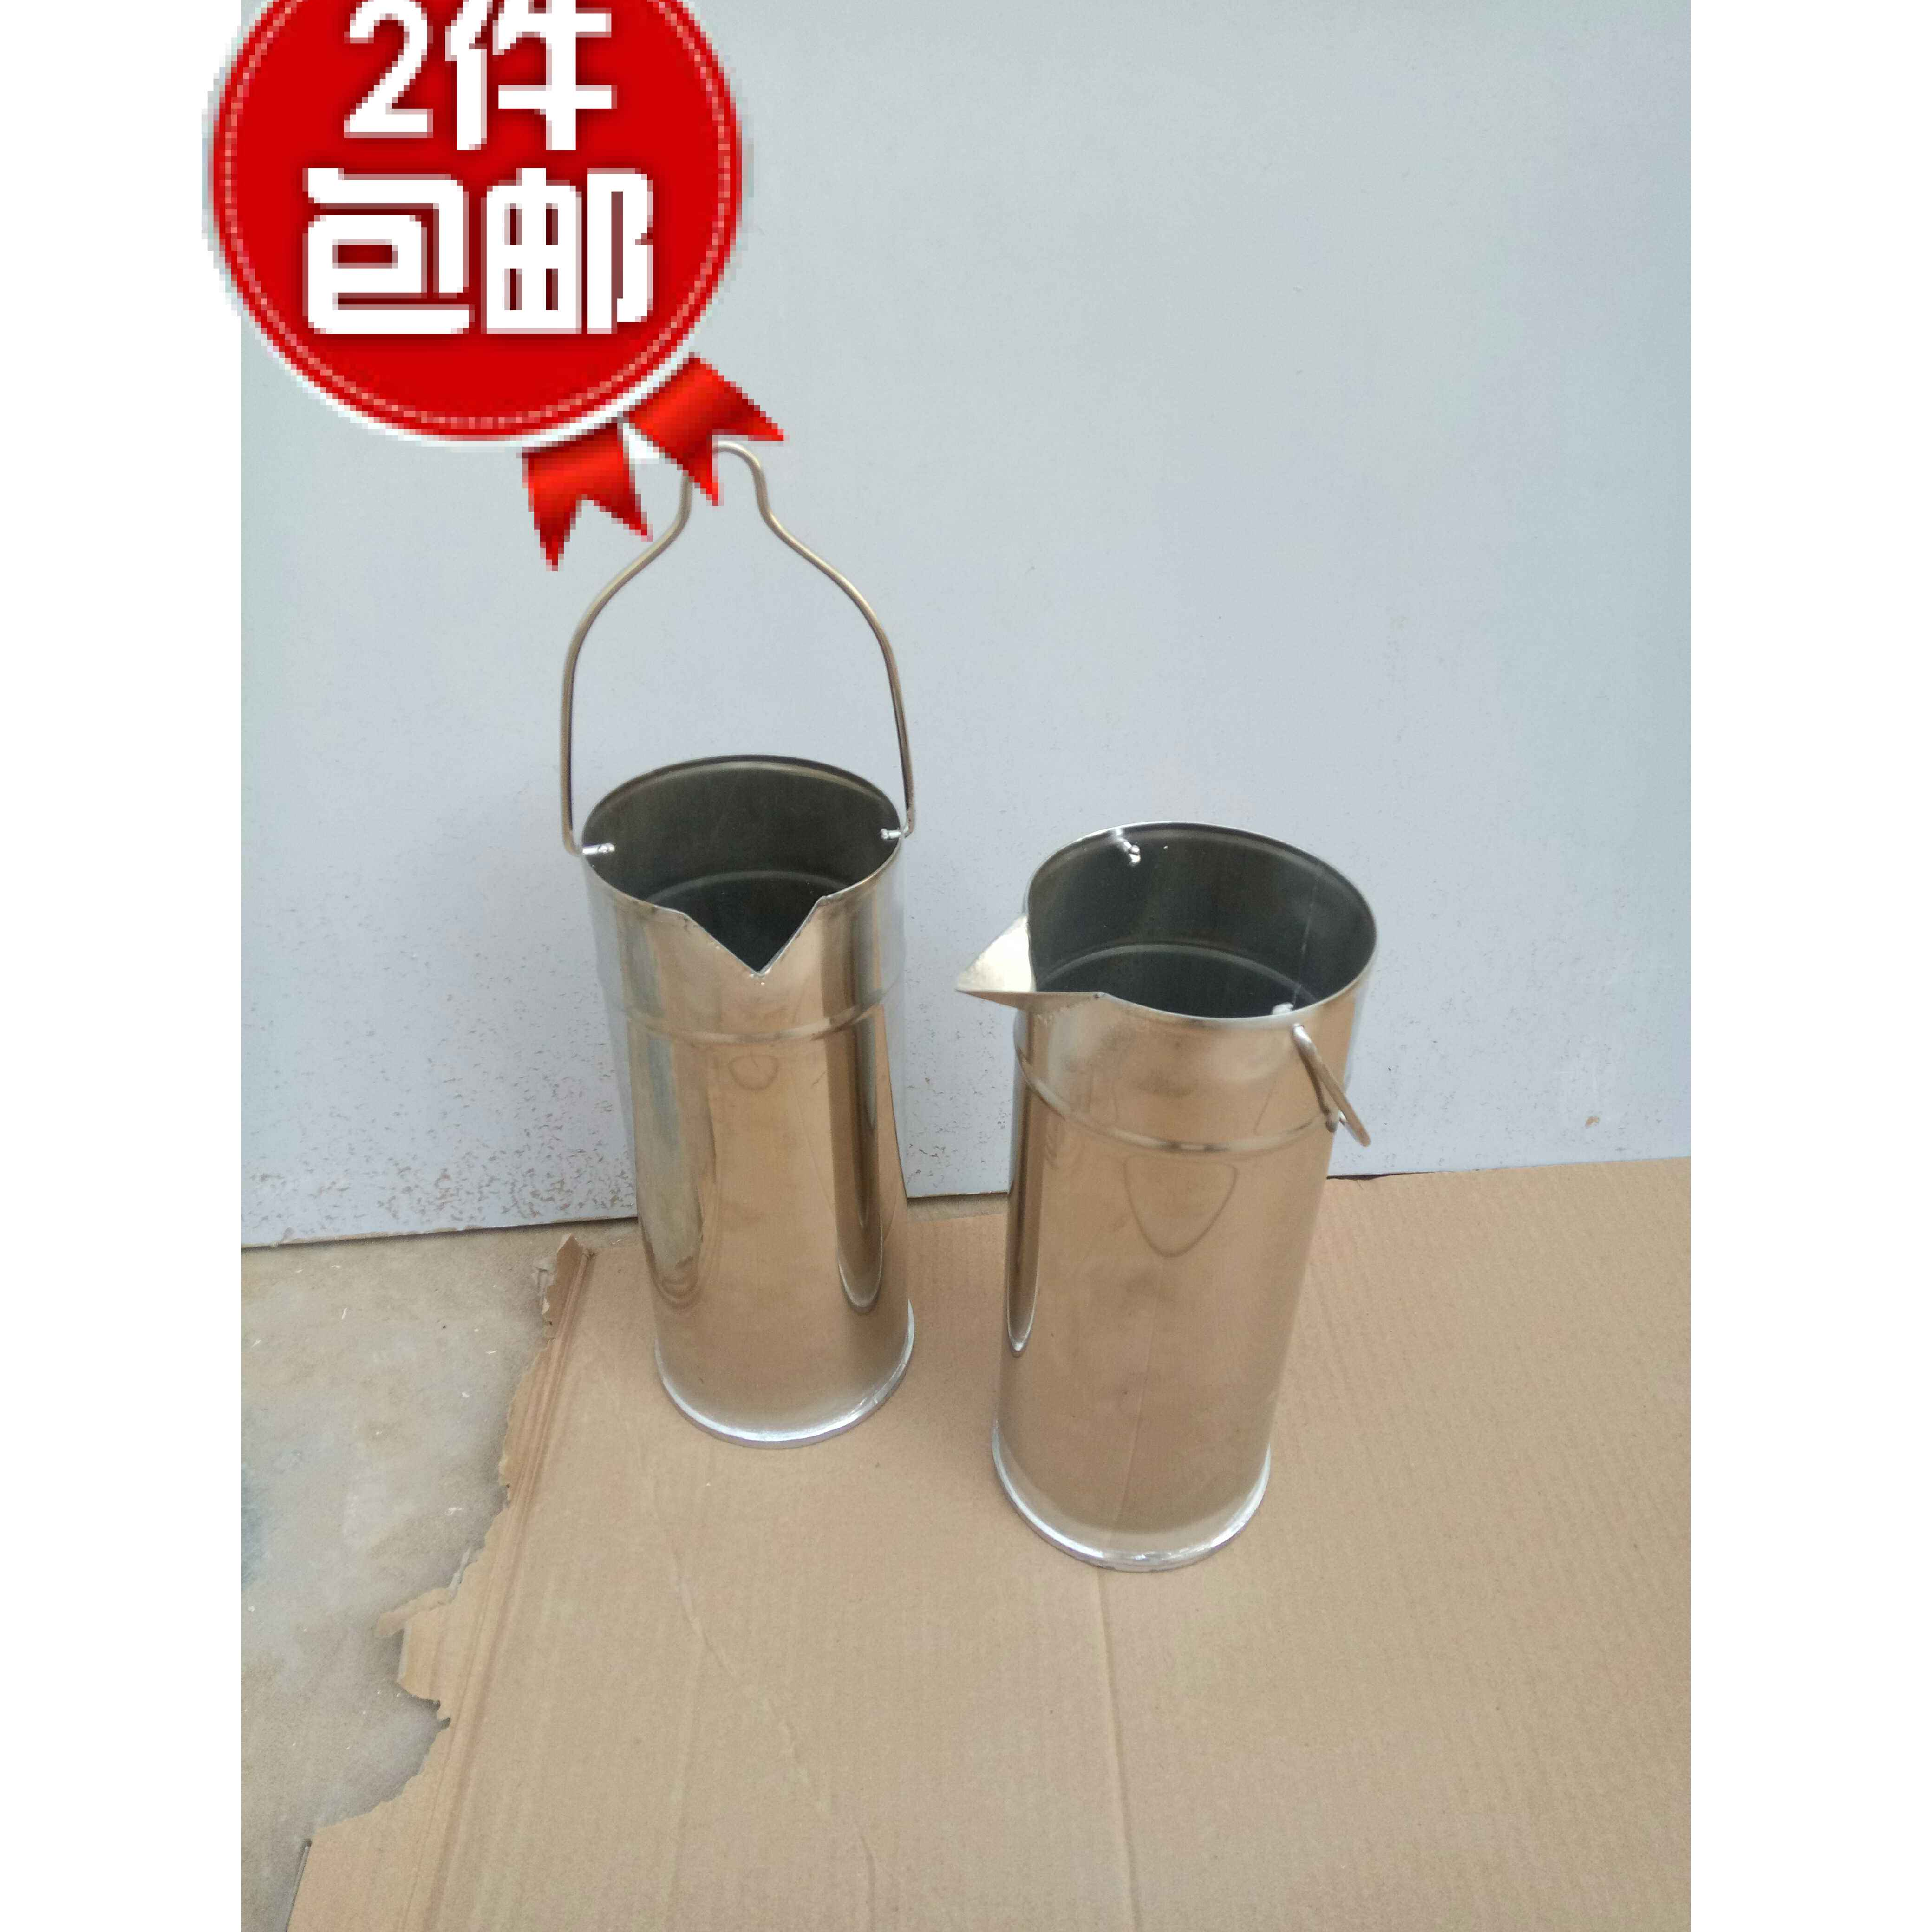 category:Scientific experiment equipment,productName:Stainless steel ...